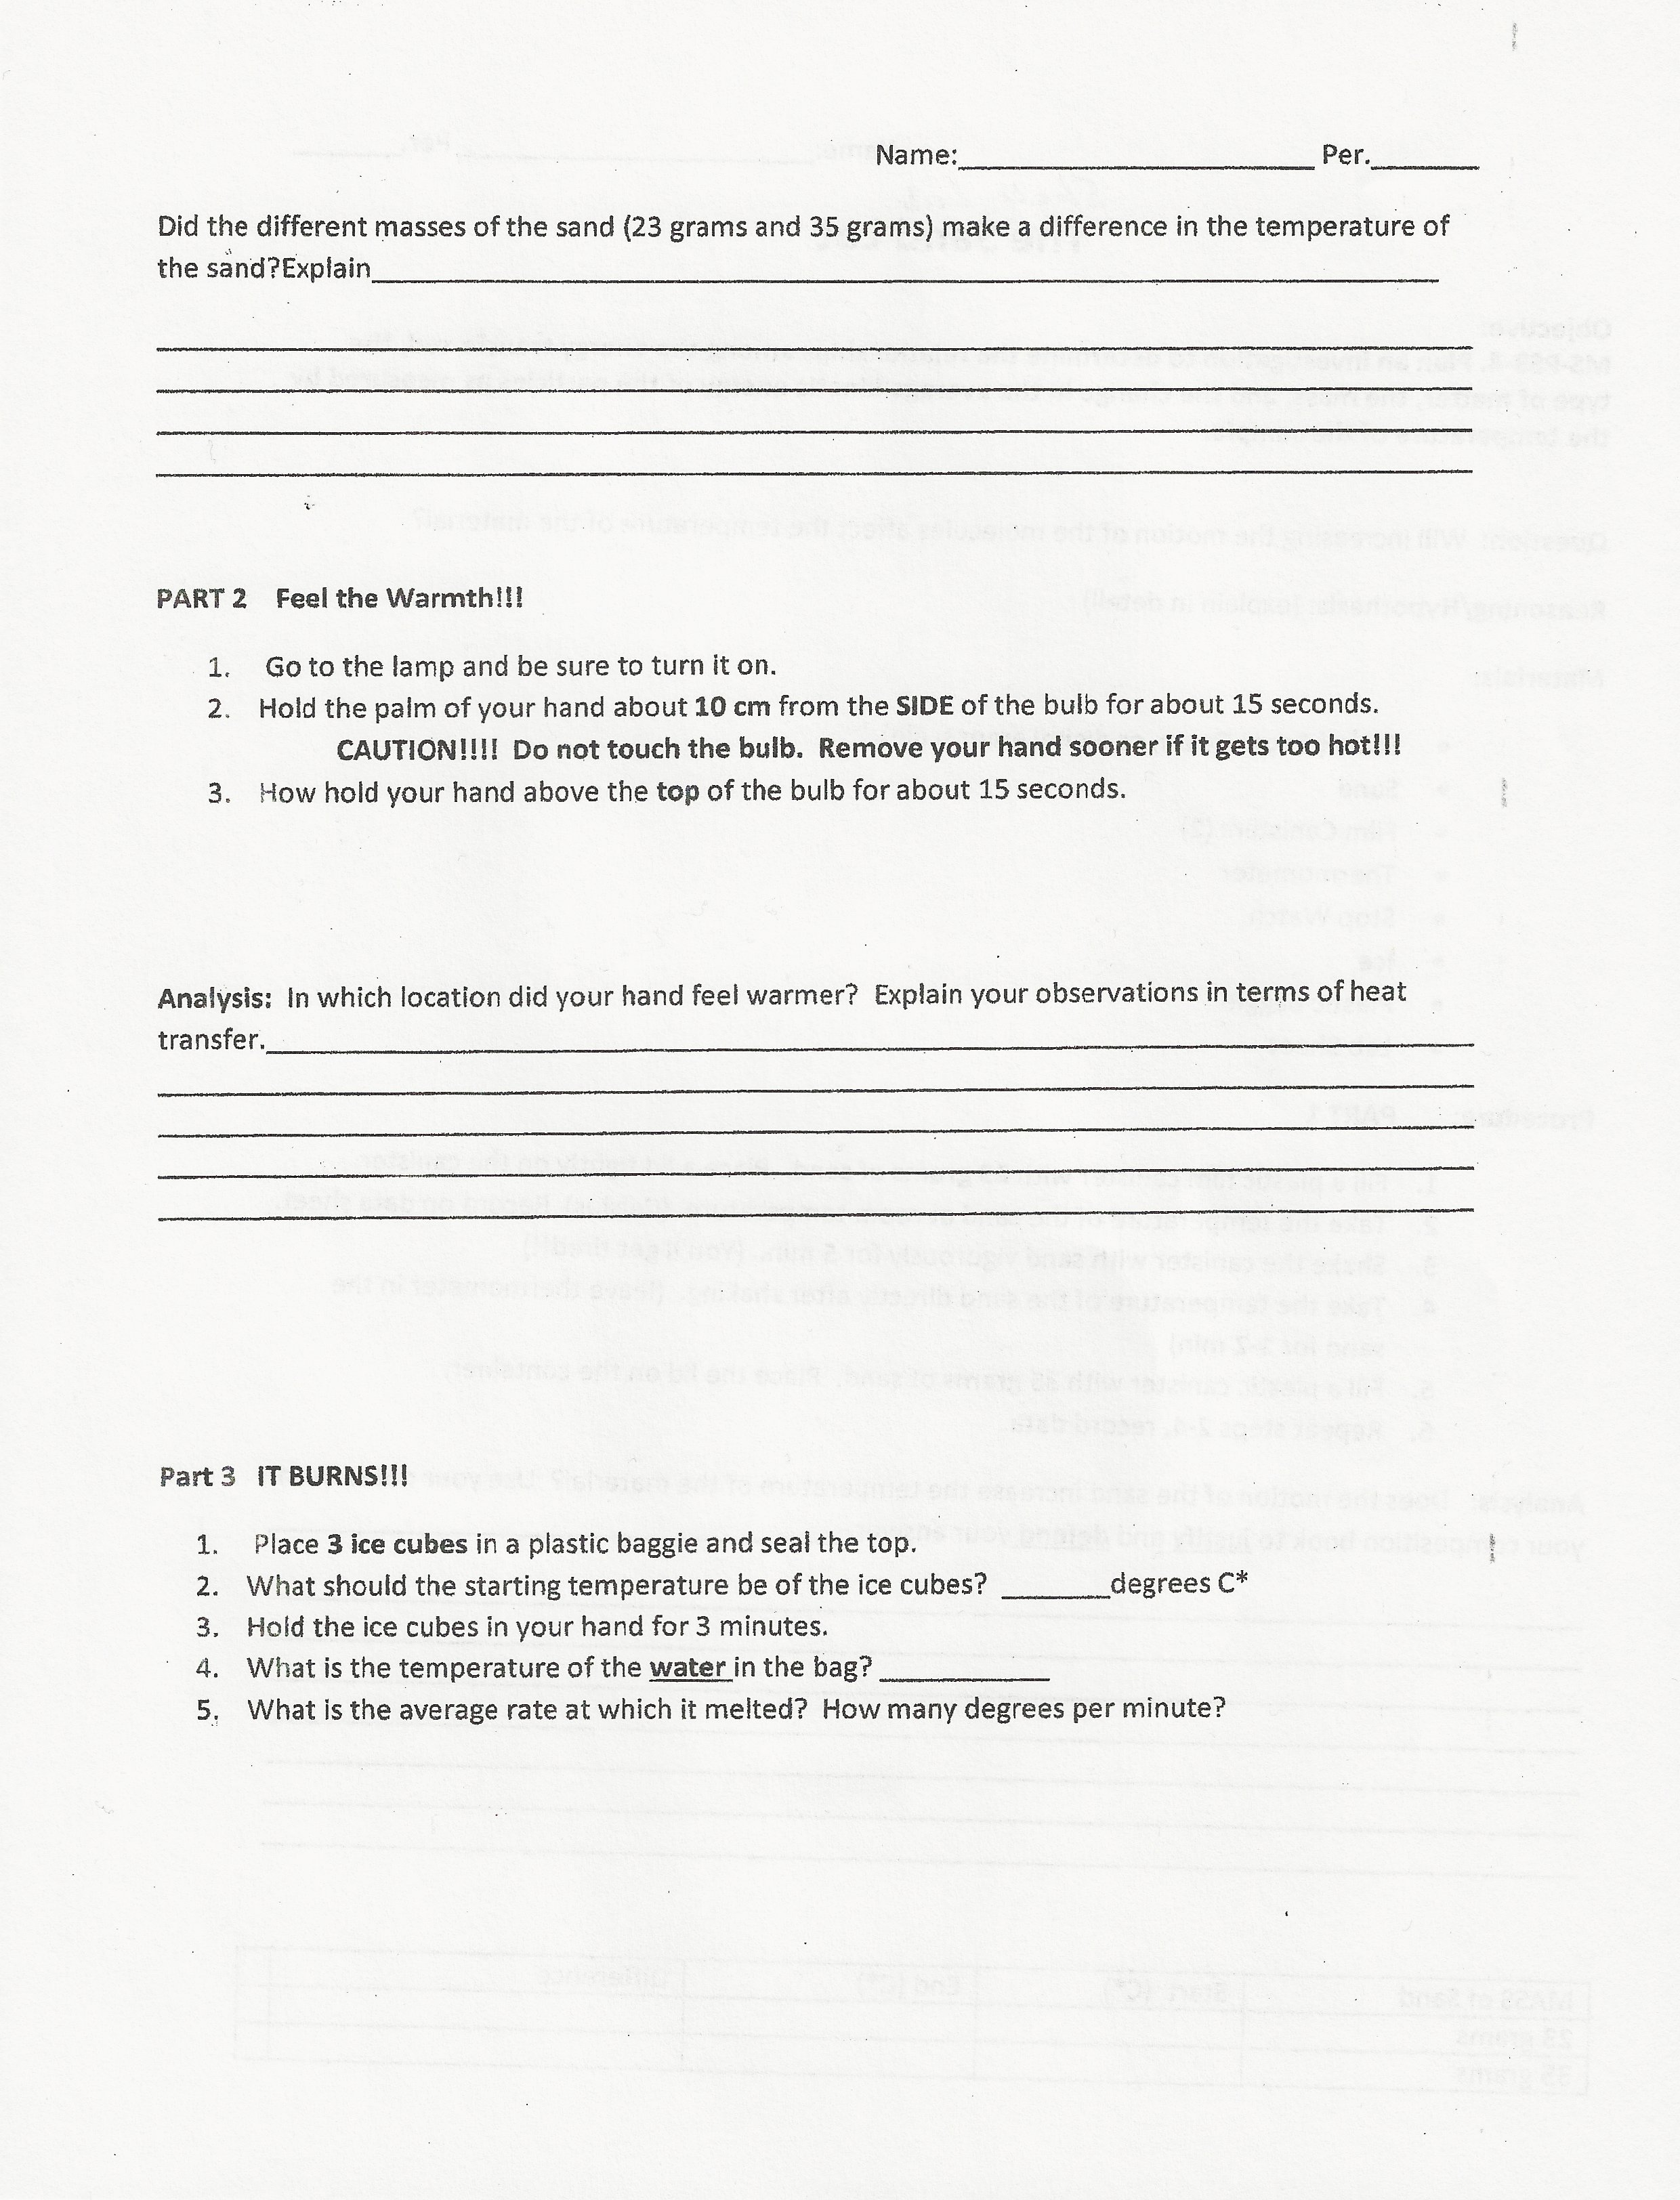 Free Worksheet Bill Nye The Science Guy Energy Worksheet Phinixi – Bill Nye Electricity Worksheet